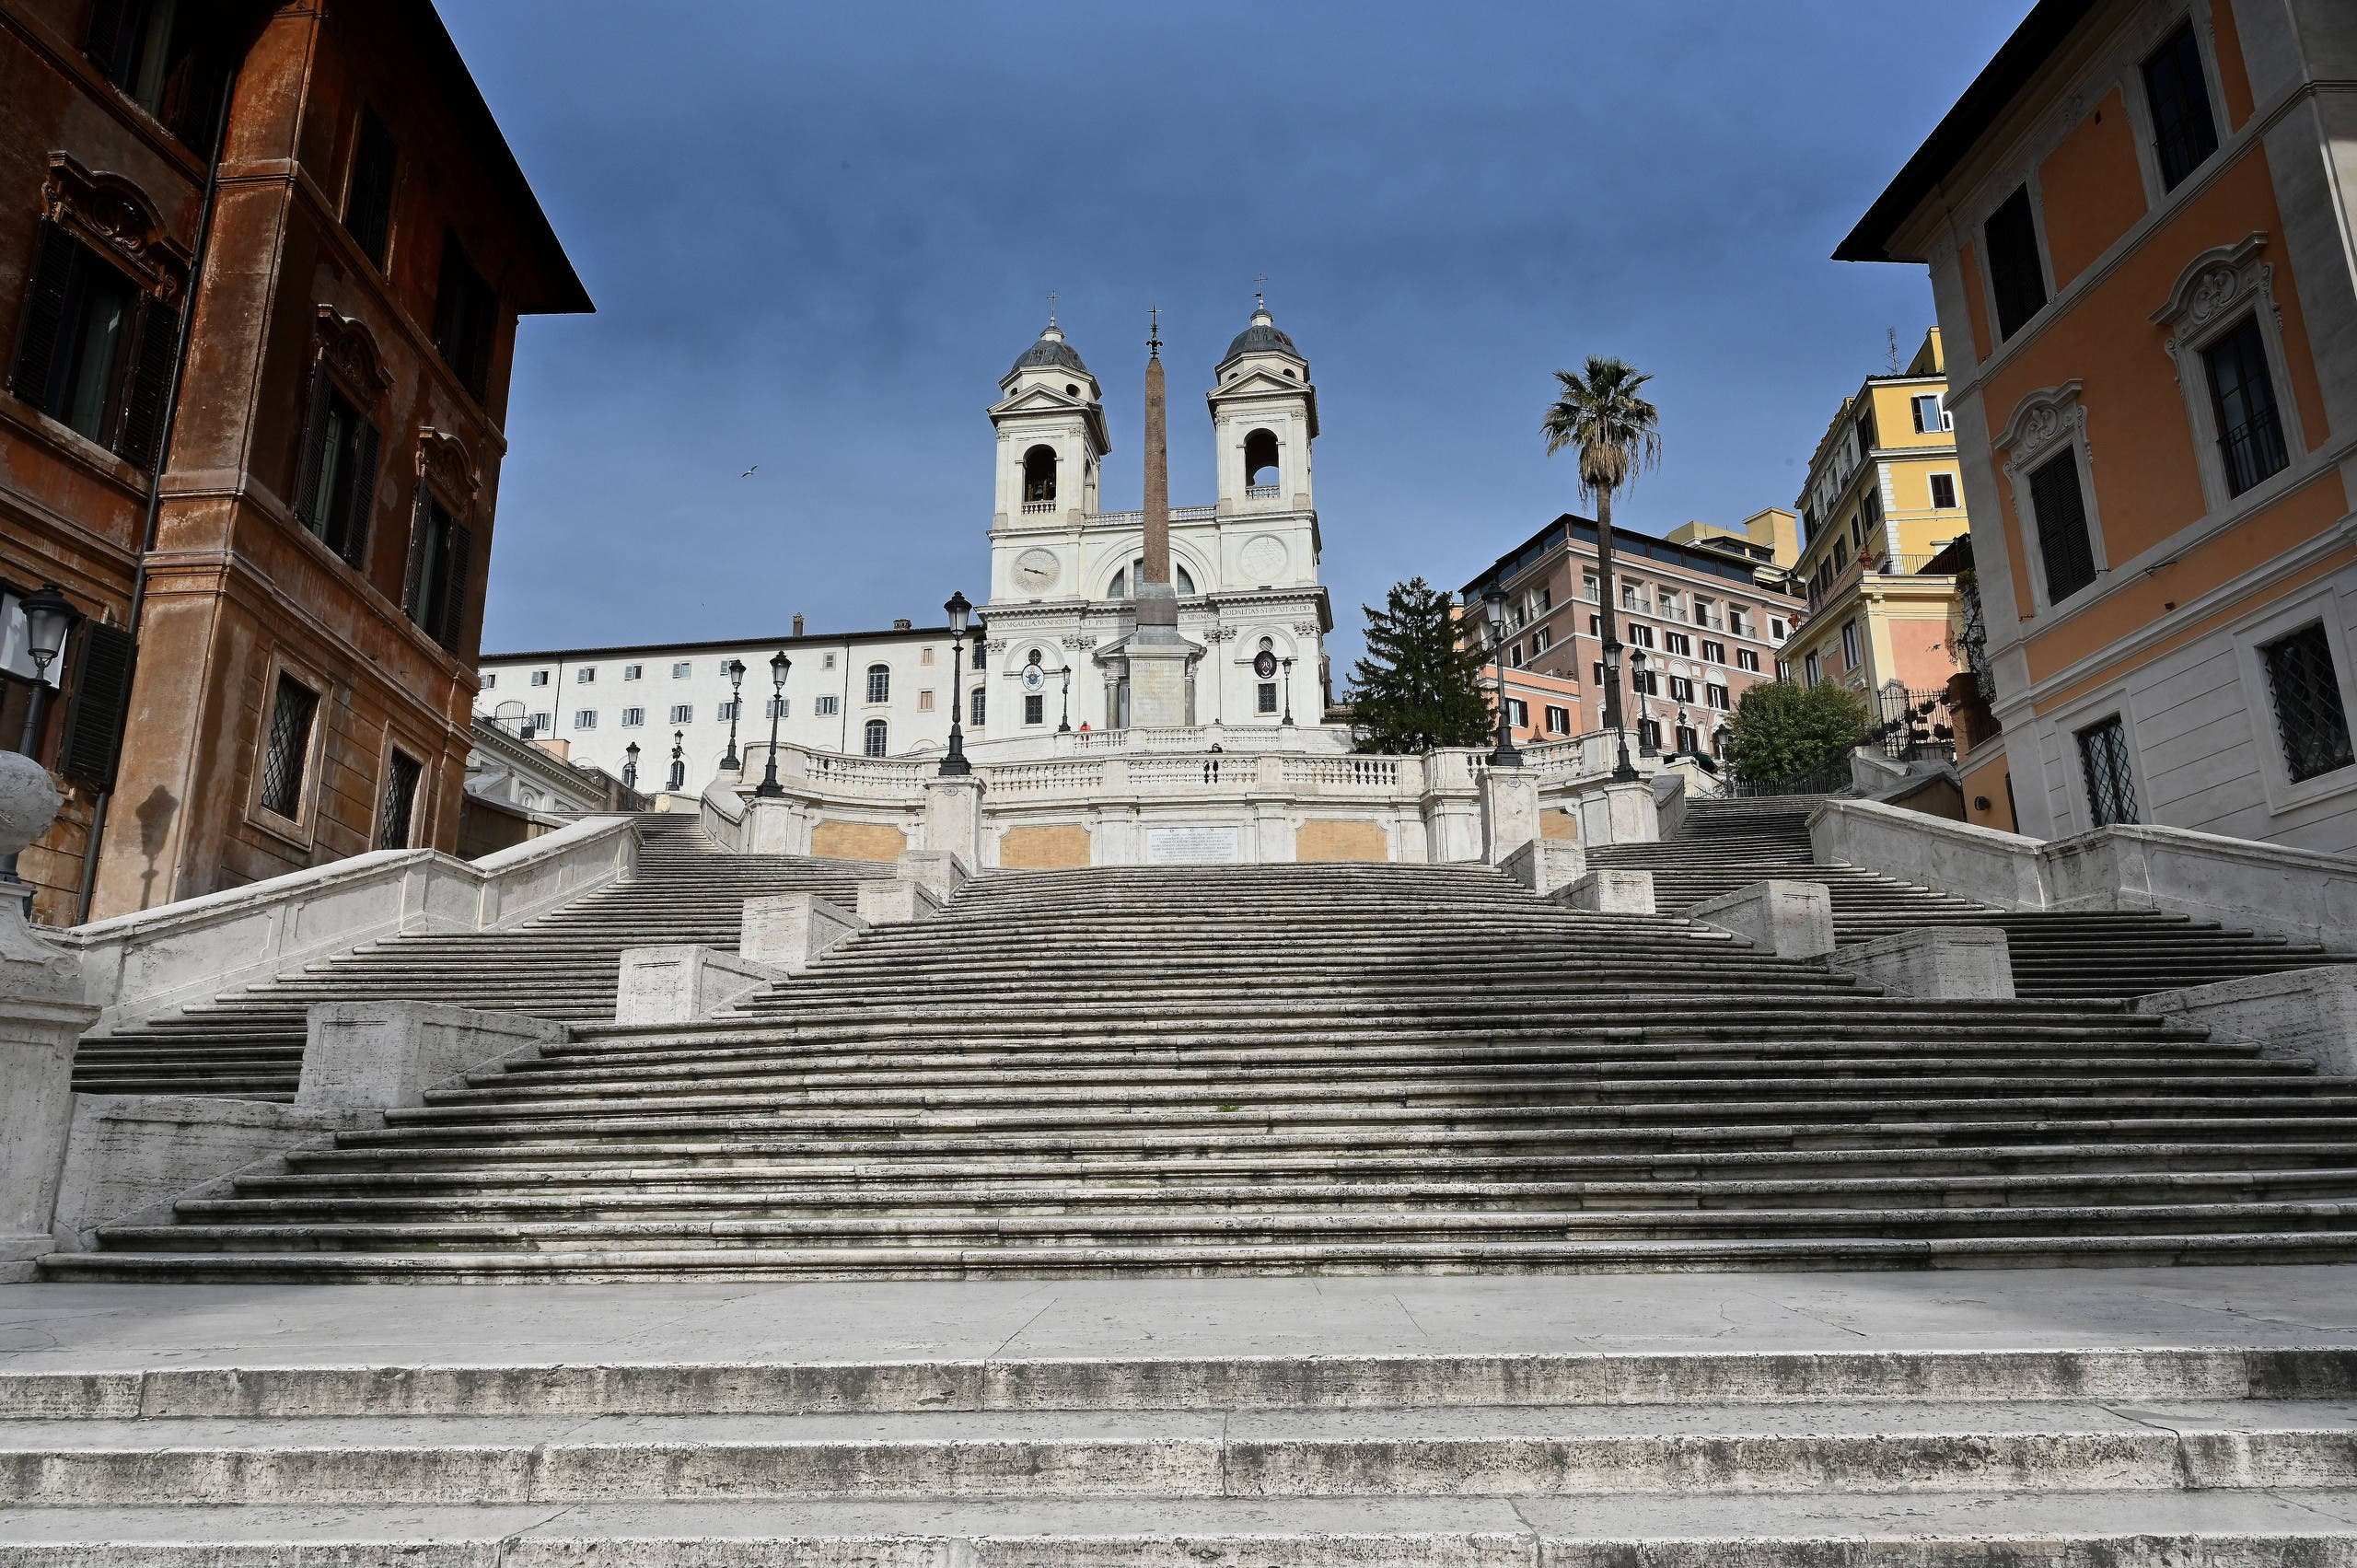 A view shows the deserted Spanish Steps by the Trinita dei Monti church in central Rome on March 12, 2020. (AP)